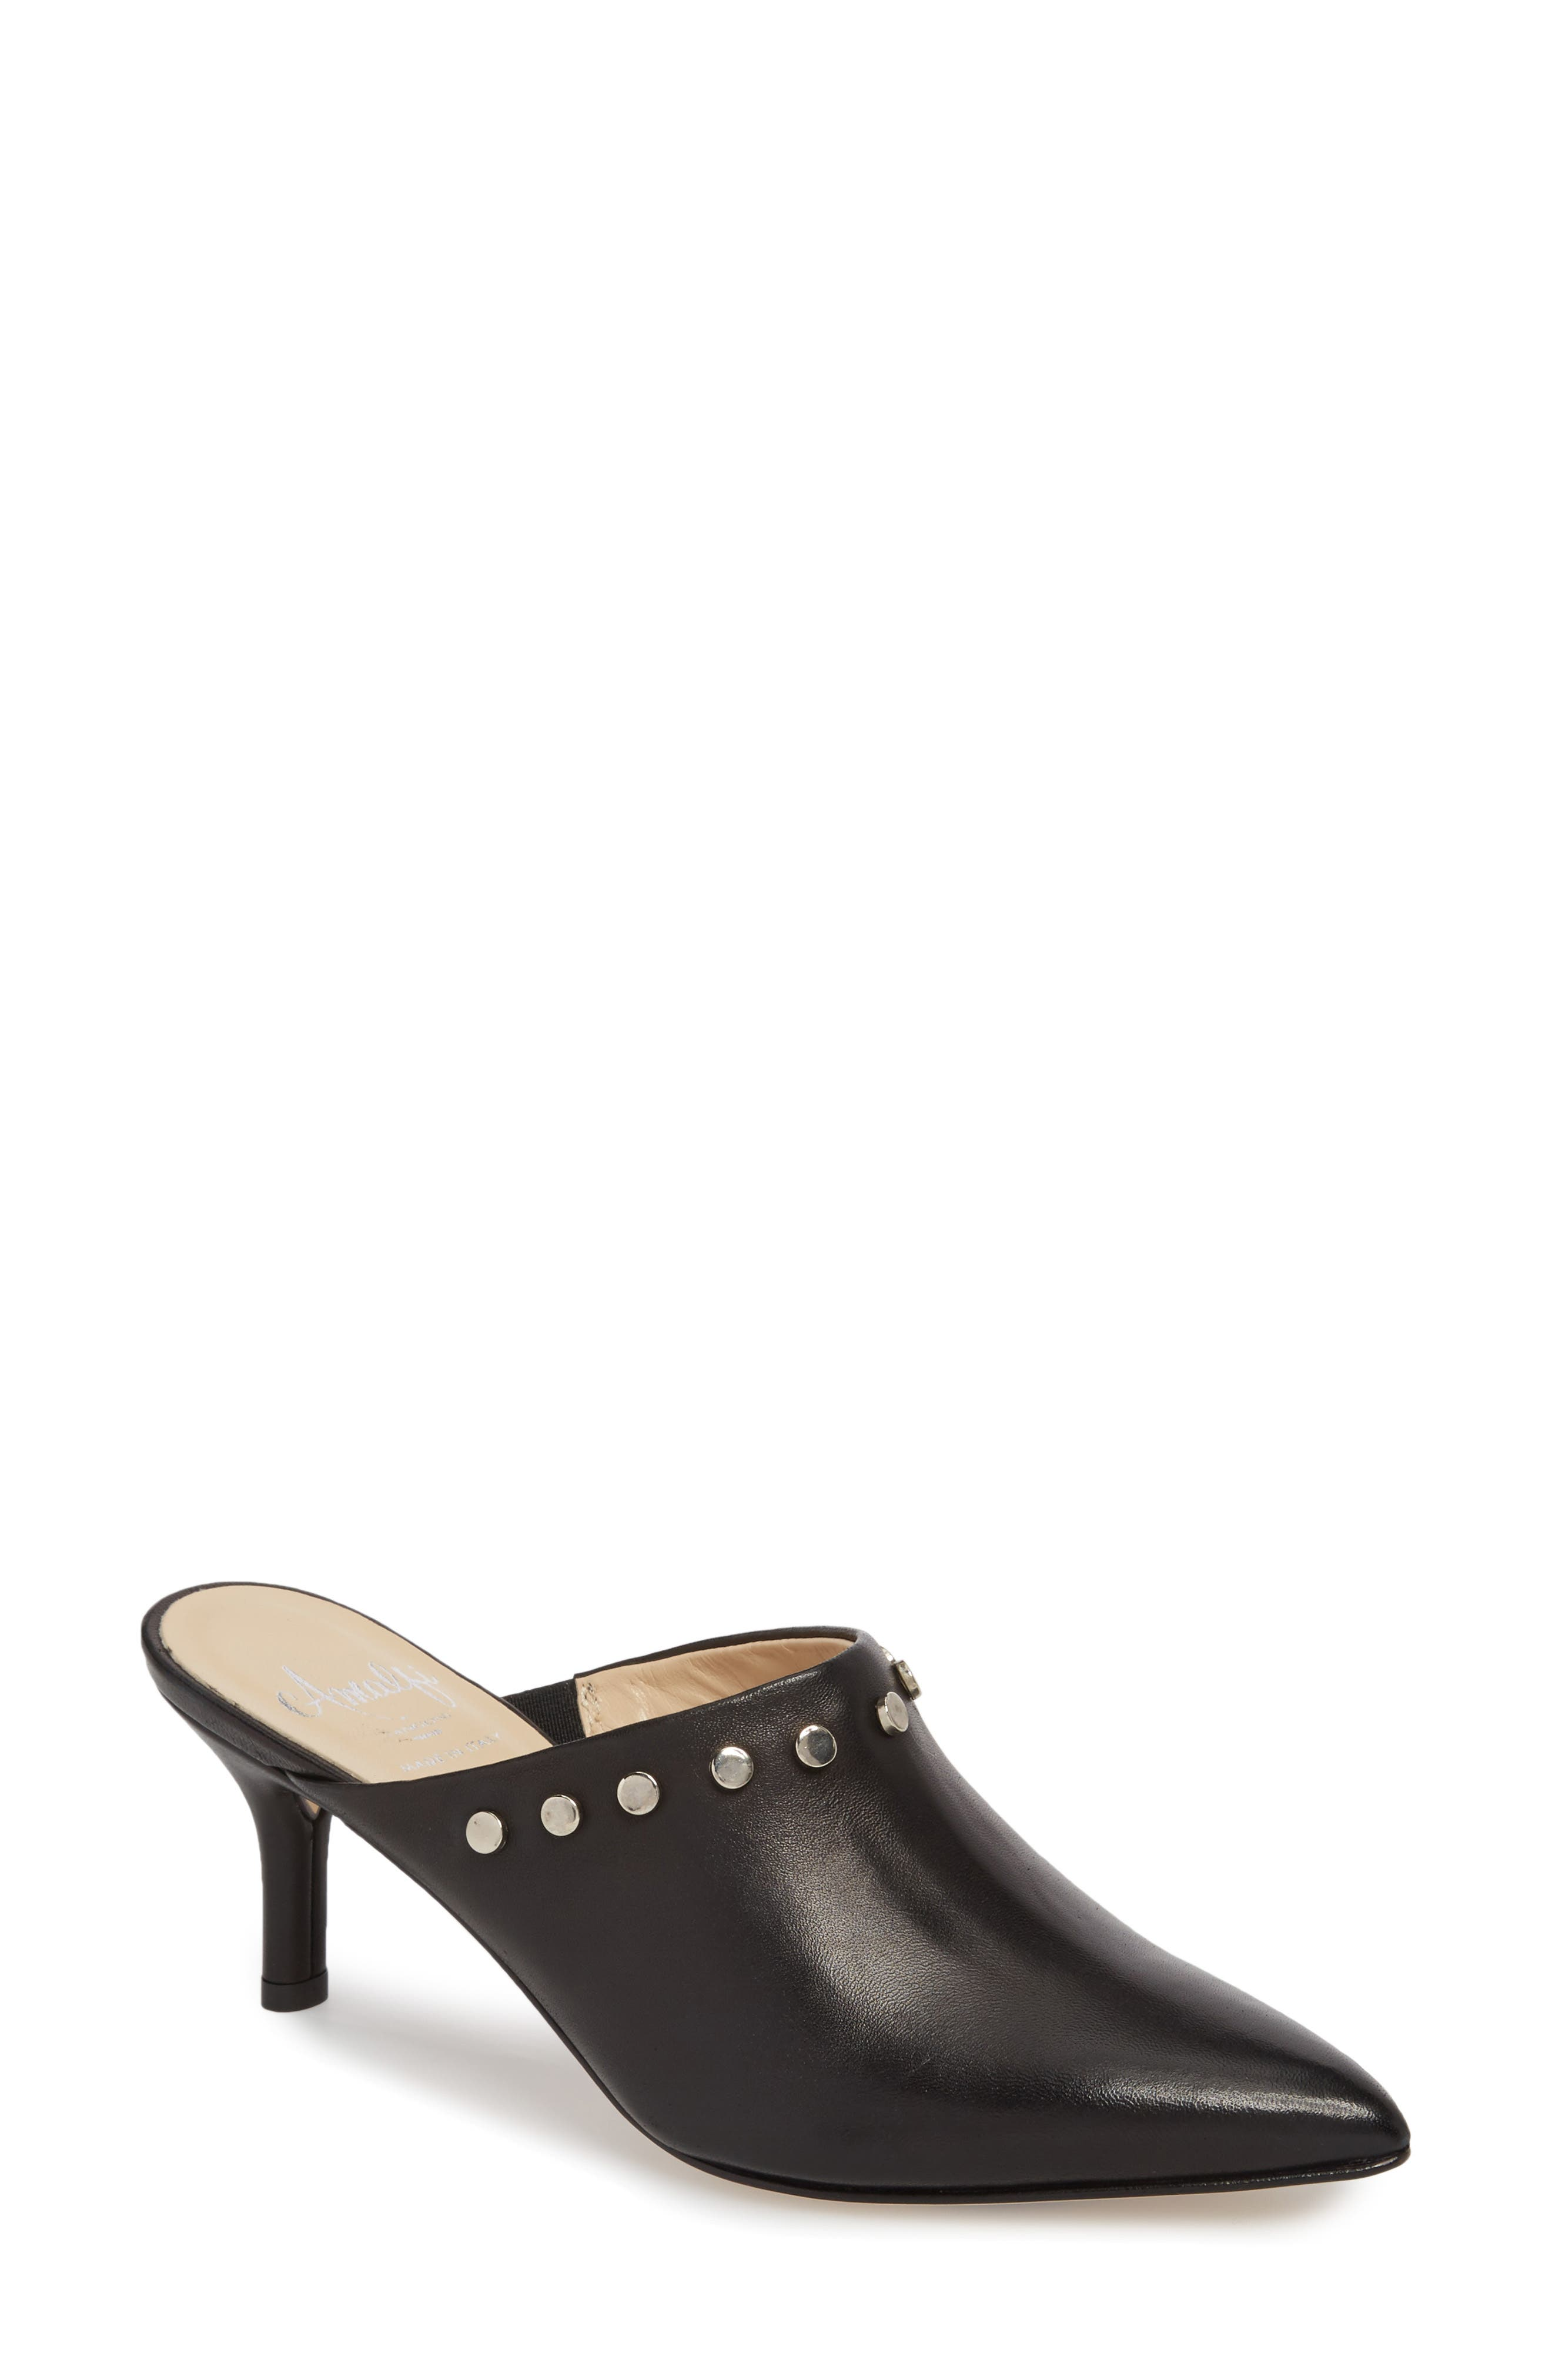 AMALFI BY RANGONI Priamo Mule, Main, color, BLACK LEATHER